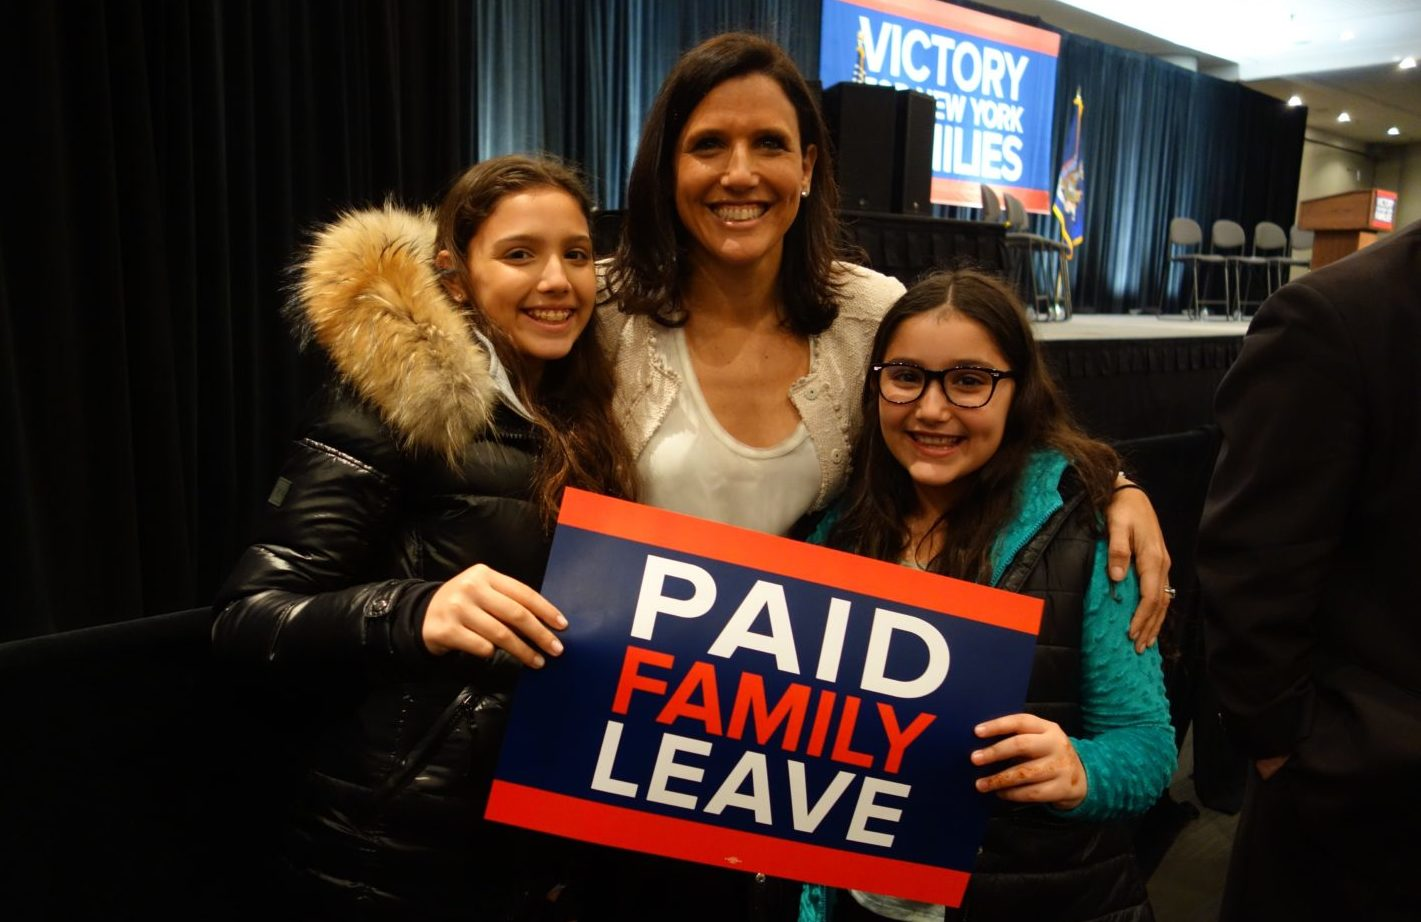 Paid Family Leave Victory Rally